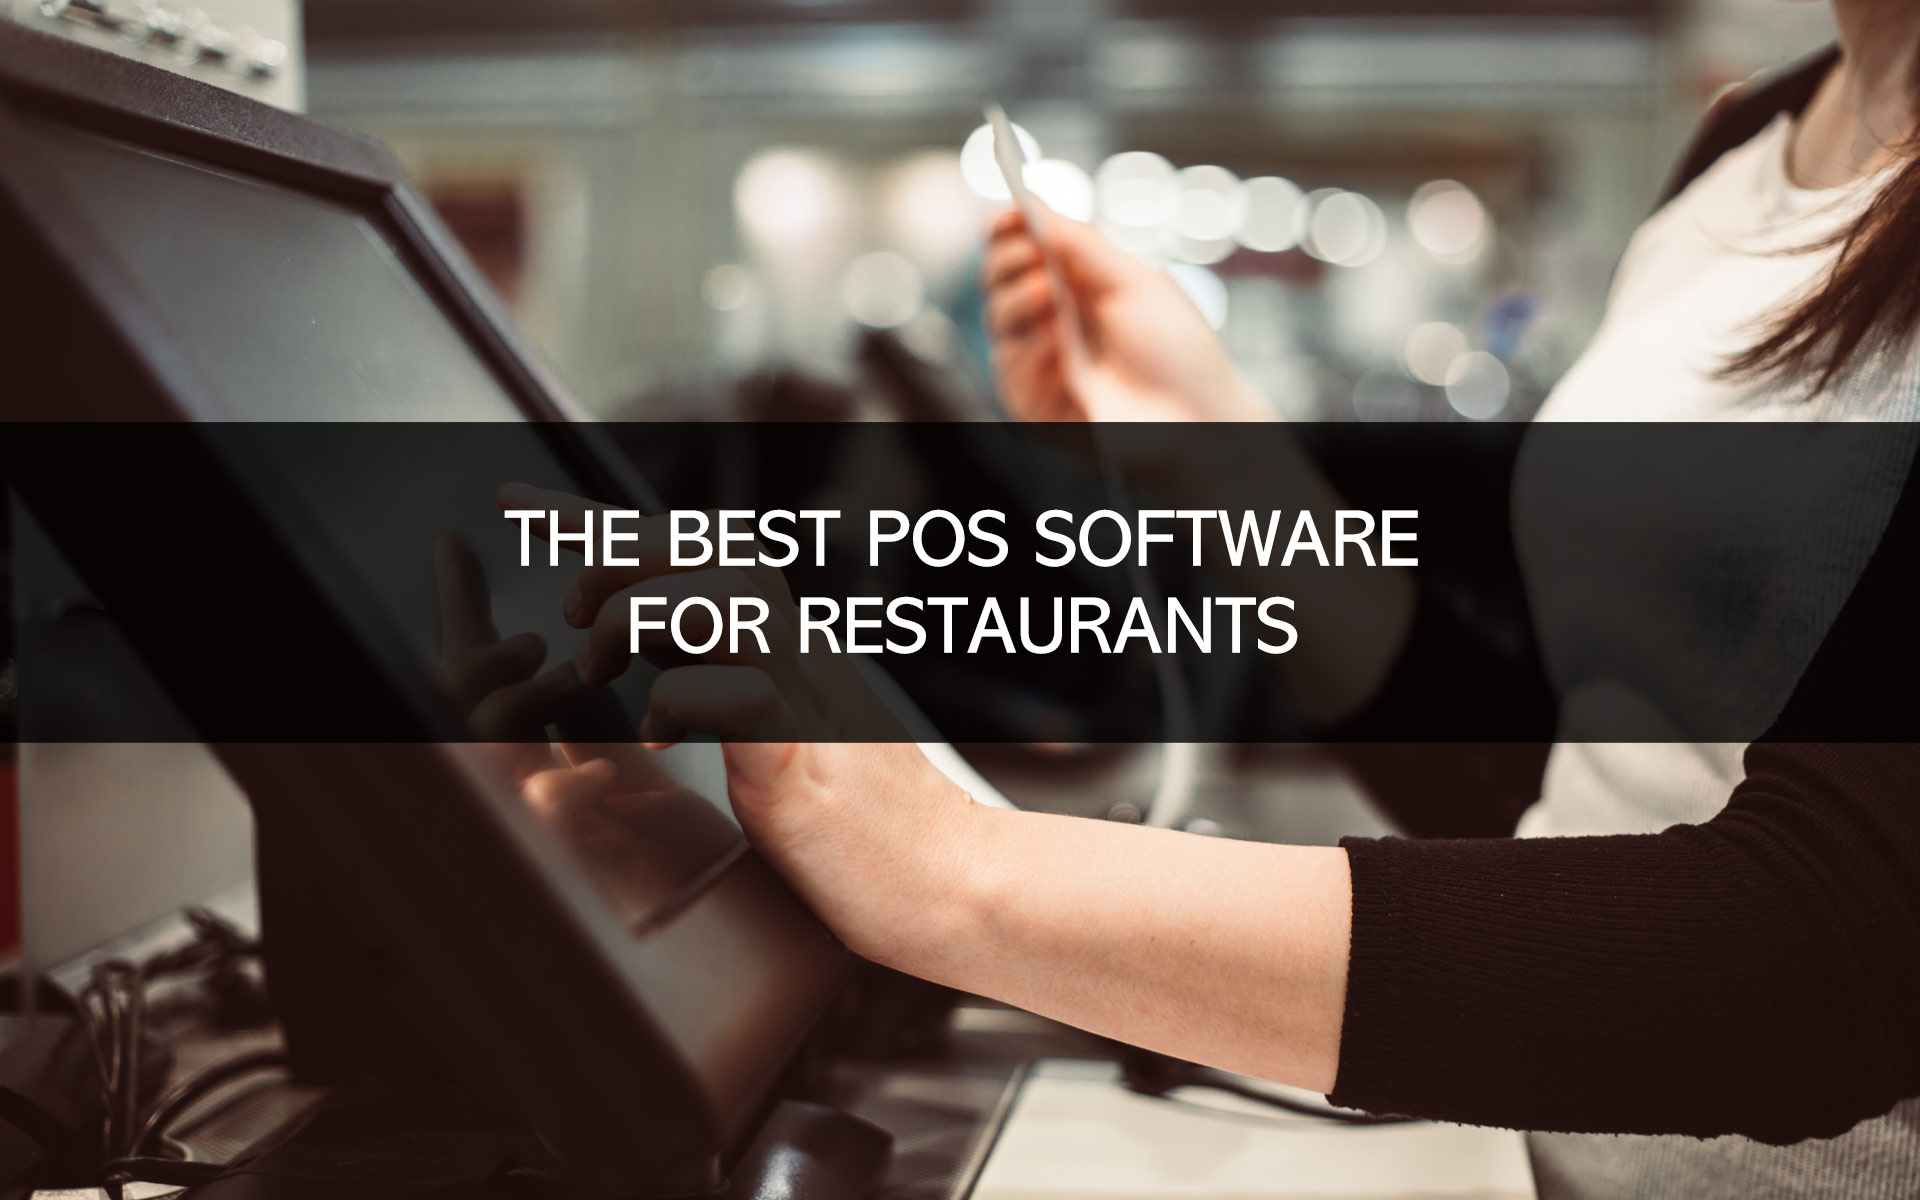 The Best POS Software for Restaurants